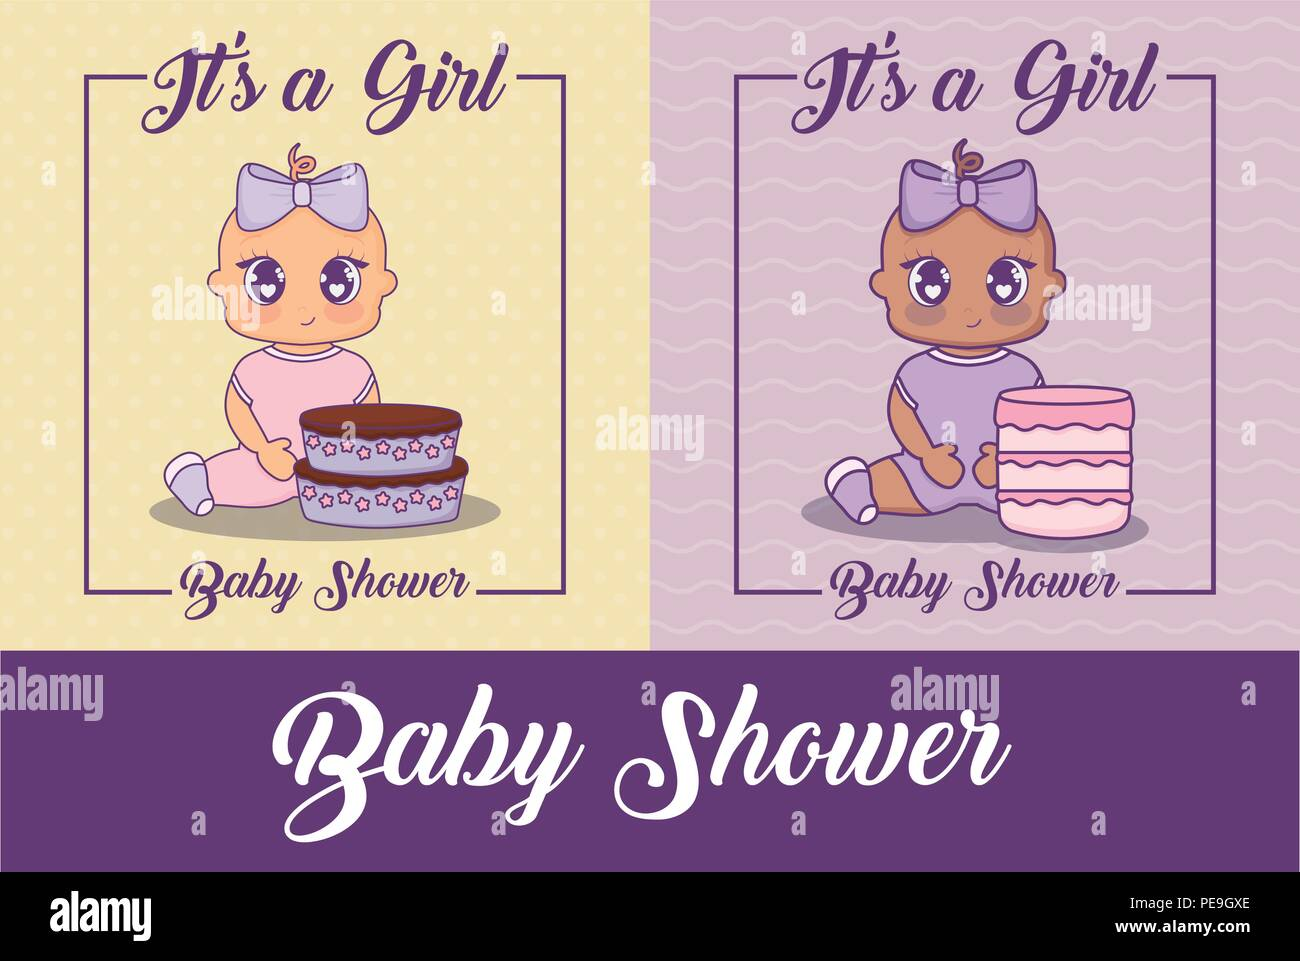 baby shower design with cute baby girls and cakes over colorful background, vector illustration - Stock Vector